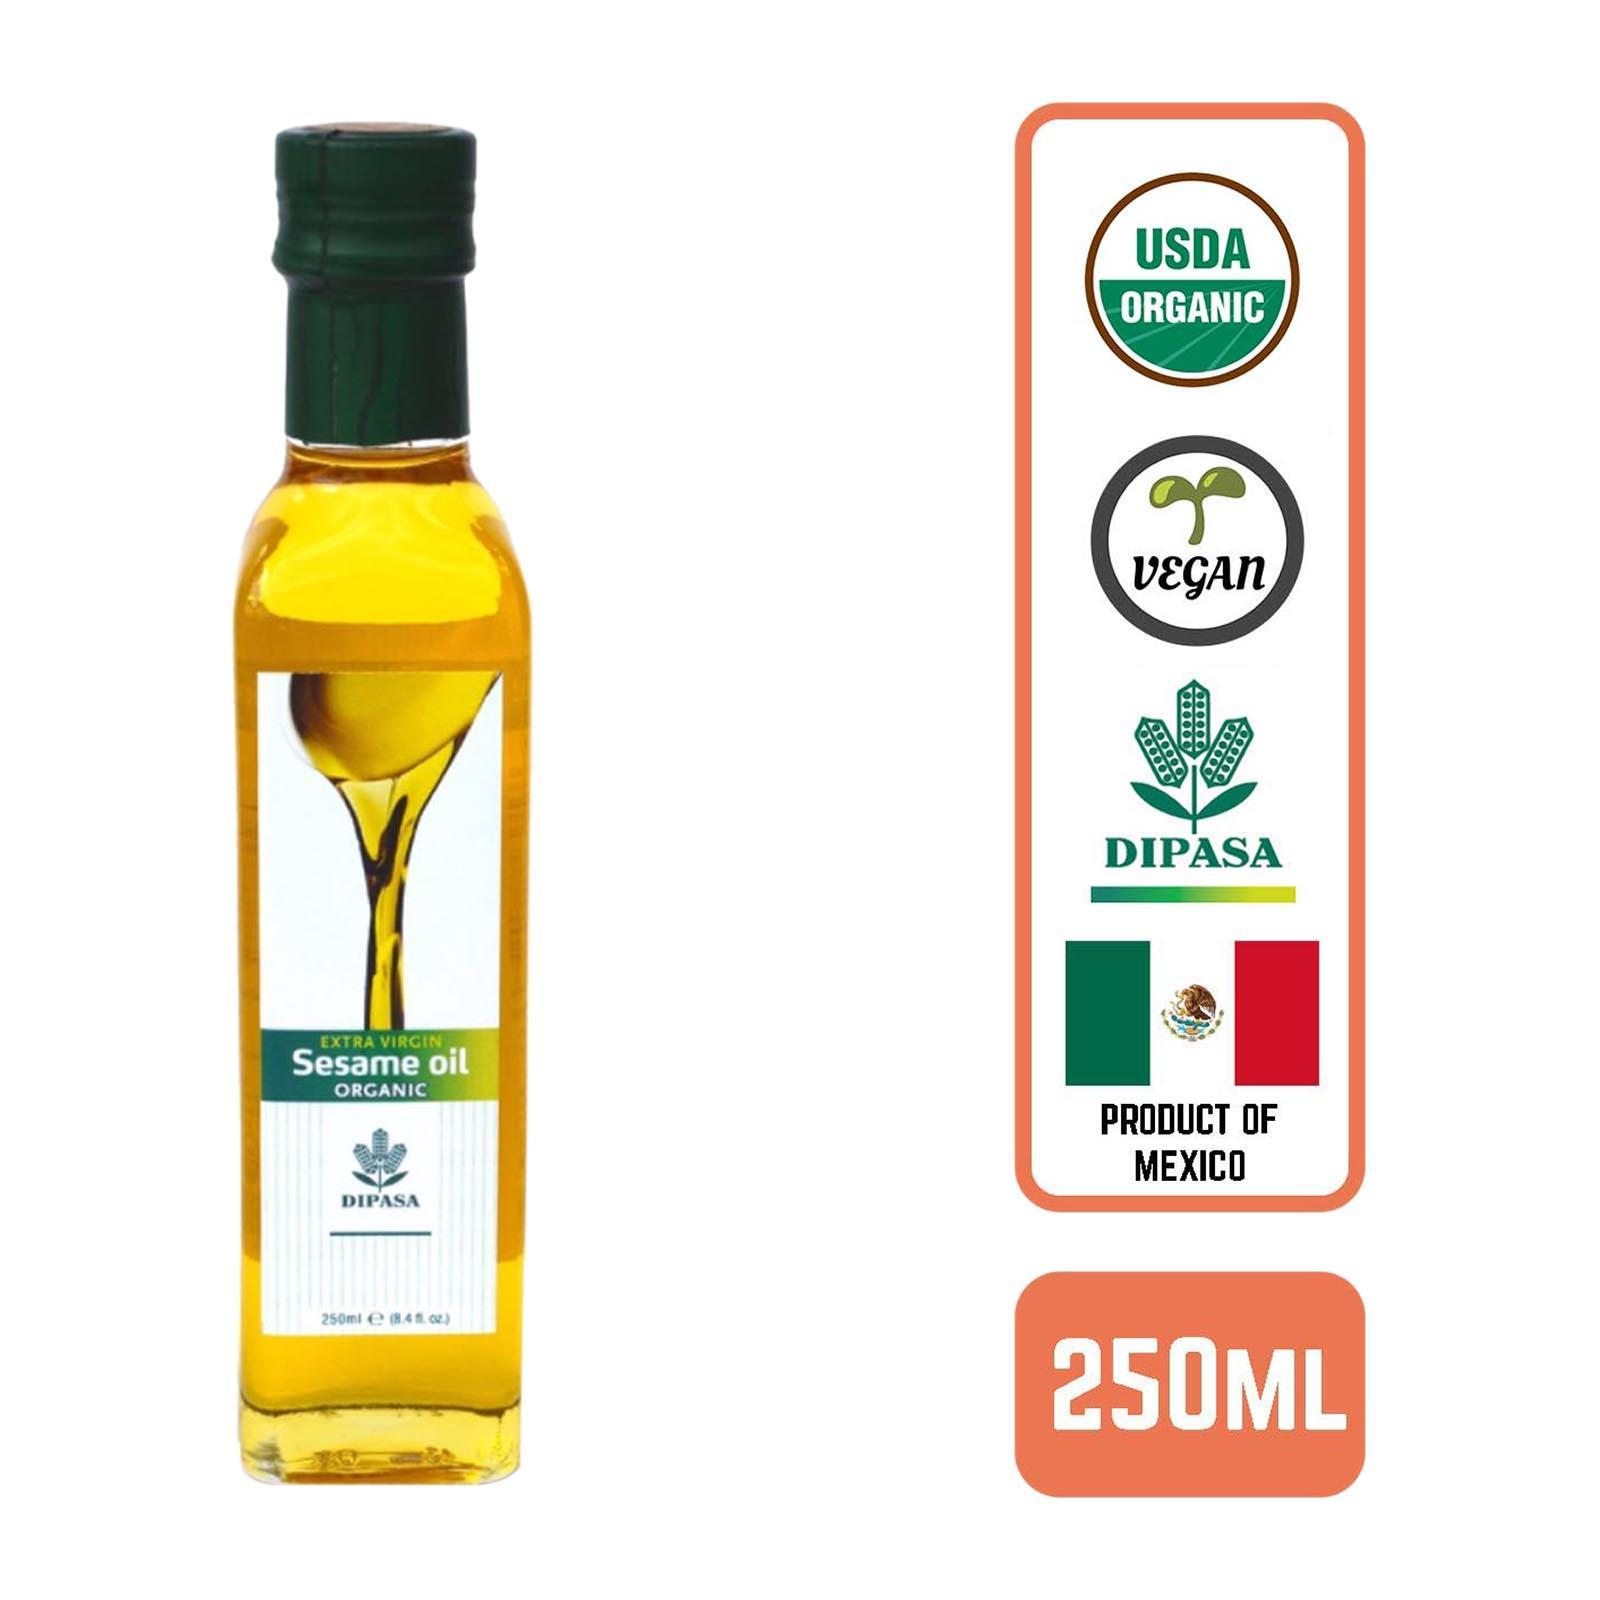 Dipasa Organic Virgin Sesame Oil By Redmart.